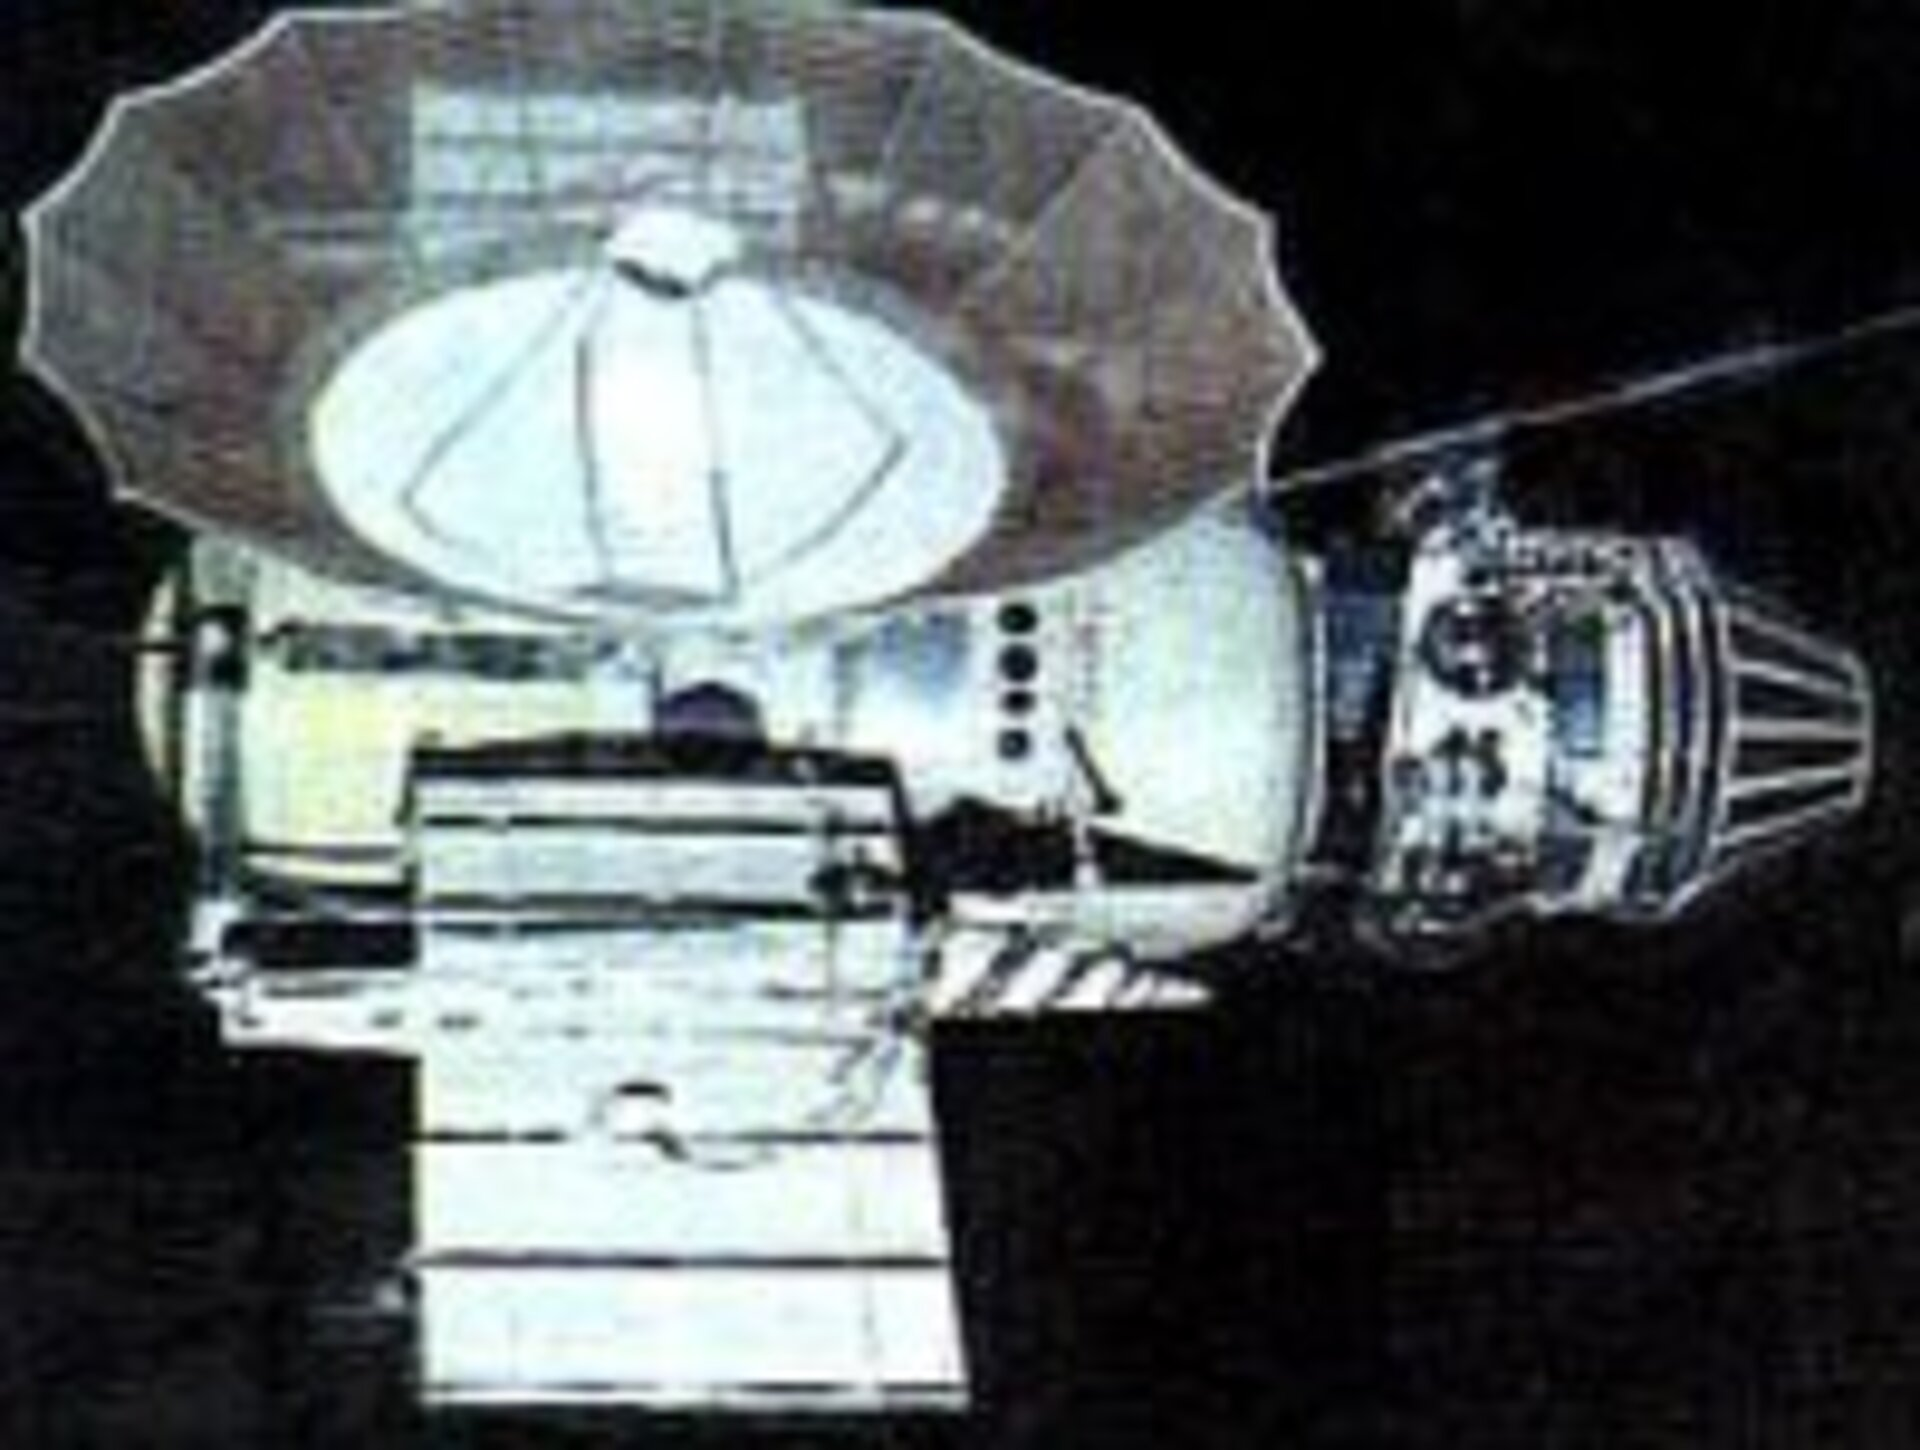 Venera 4, the first spacecraft to return data about the atmosphere of Venus